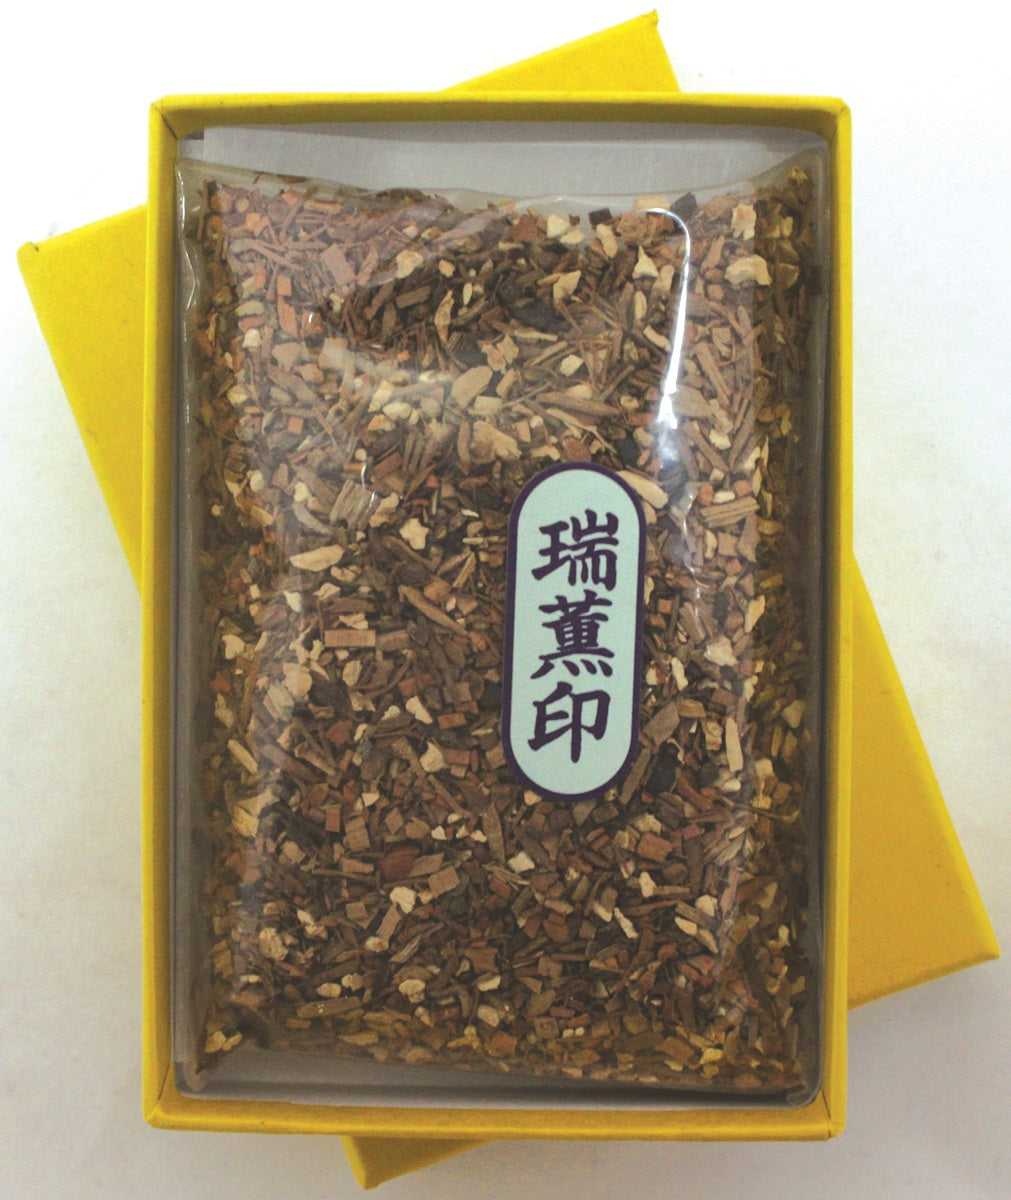 Zuikun - Ceremonial wood chips